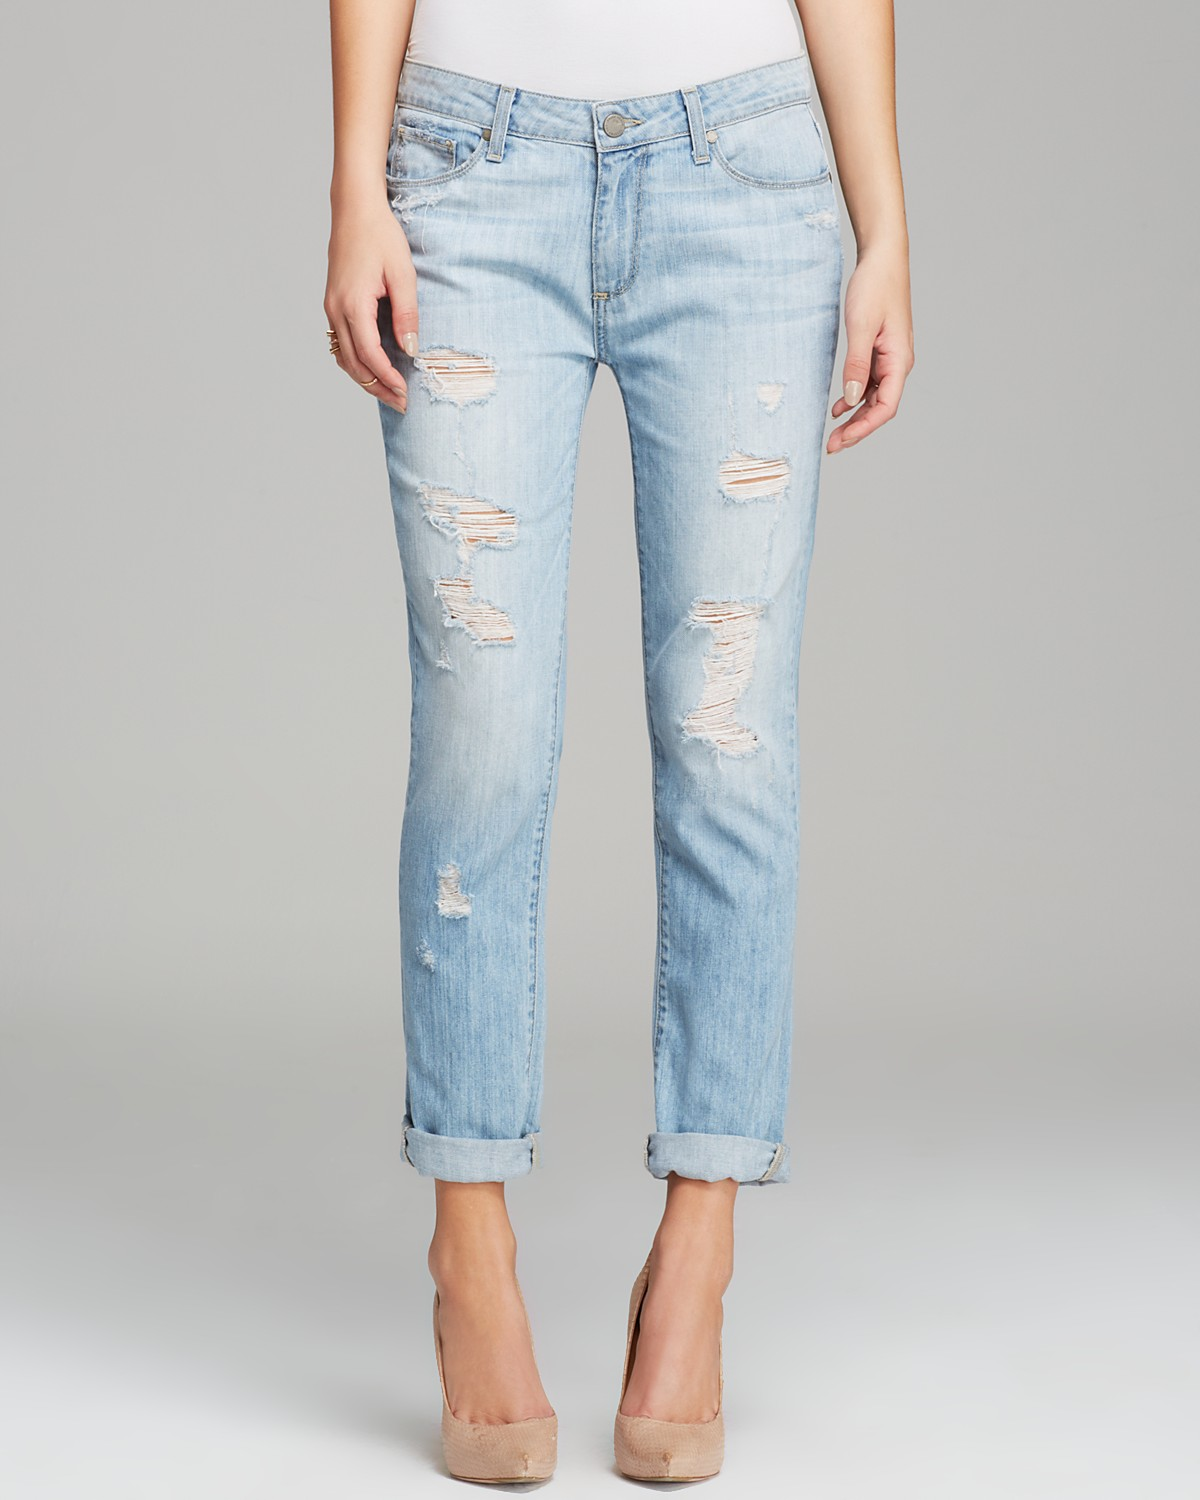 Paige Denim Jeans - Jimmy Jimmy Skinny Naomi Destructed | Bloomingdale's